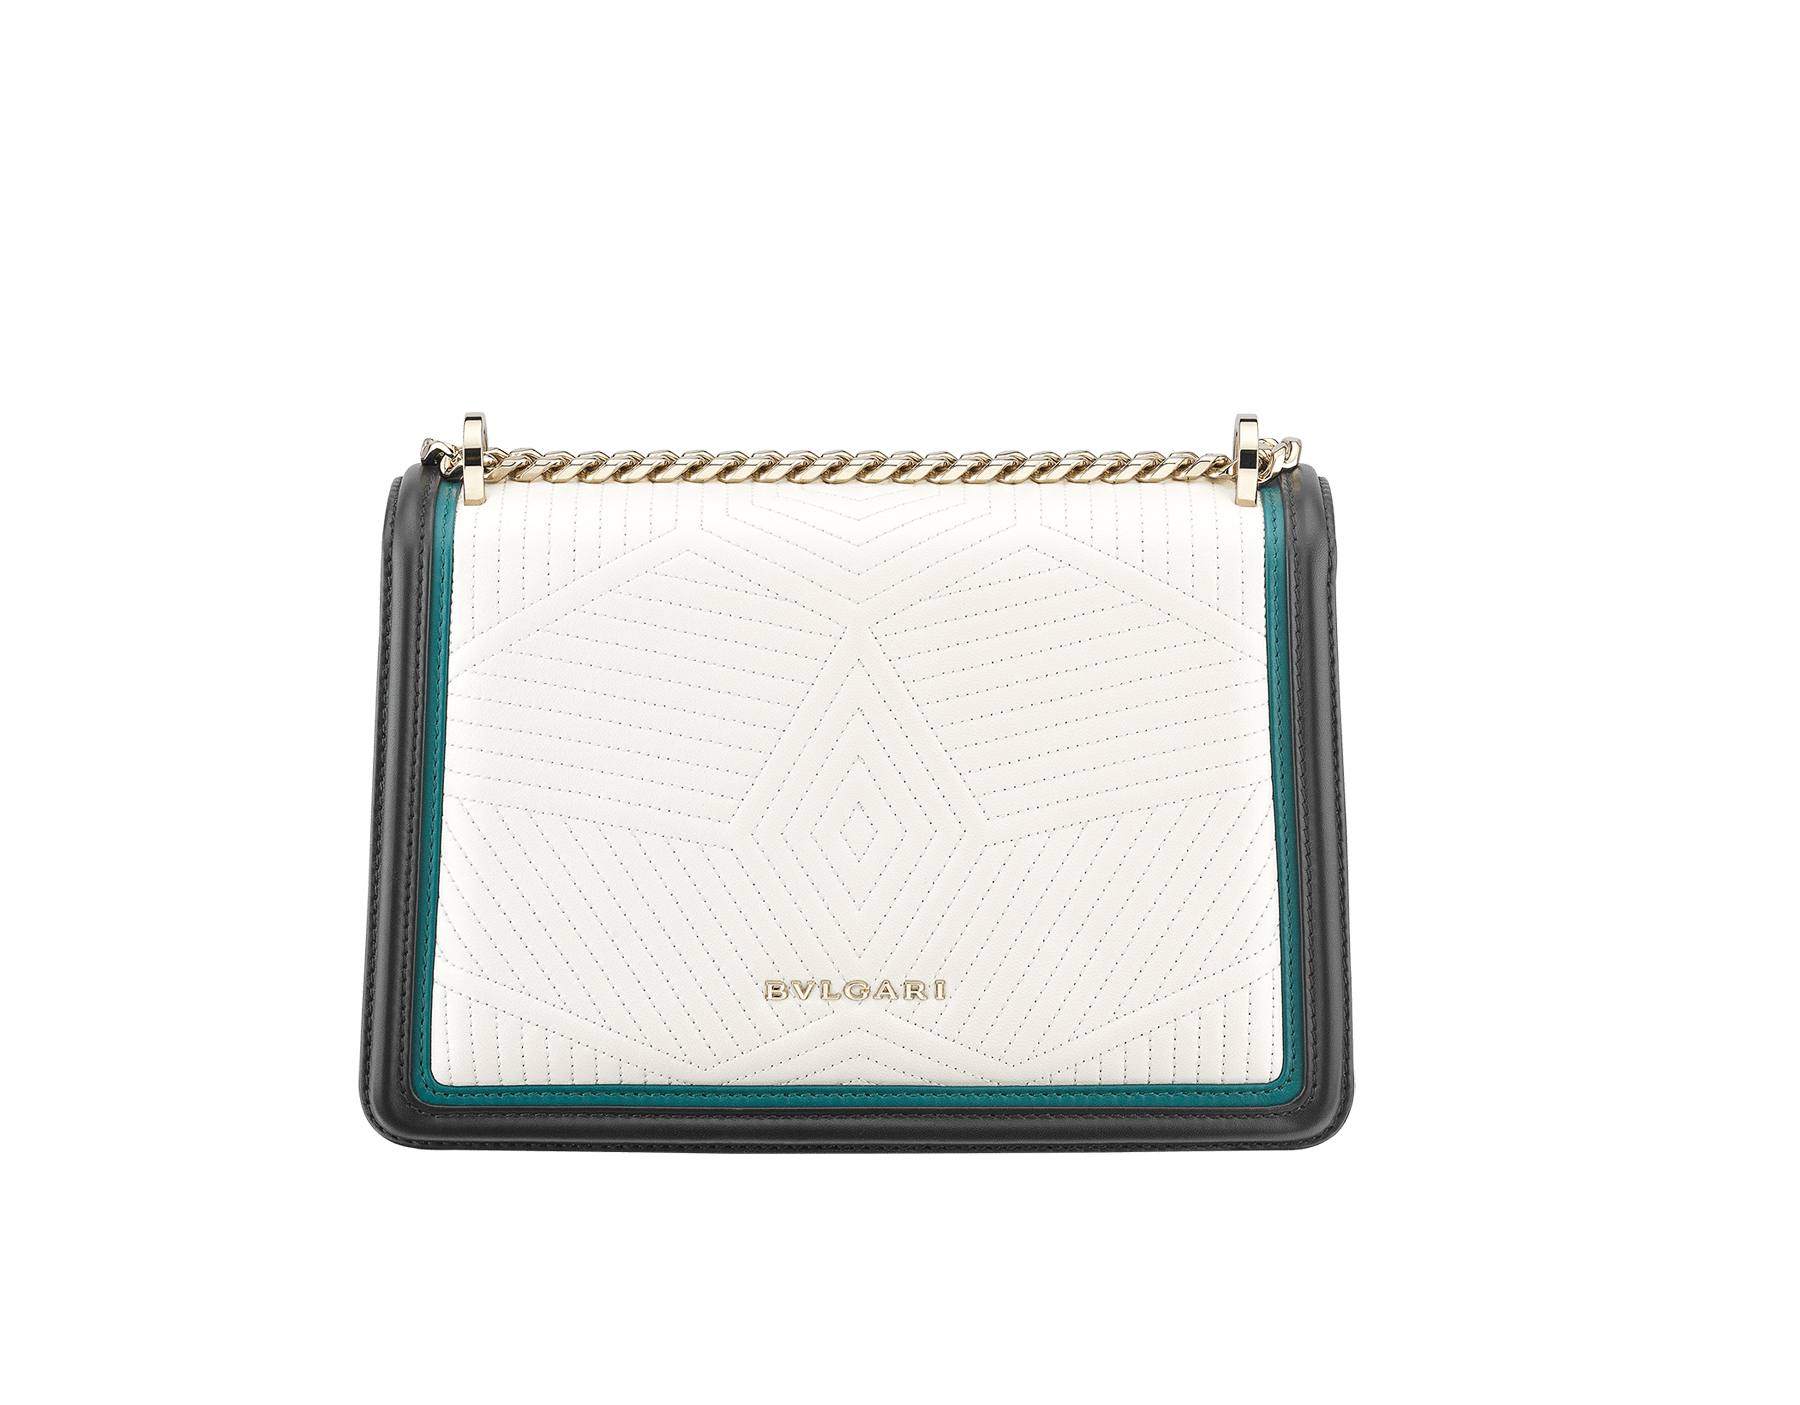 Serpenti Diamond Blast shoulder bag in white agate quilted nappa leather body and deep jade and black calf leather frames. Snakehead closure in light gold plated brass decorated with deep jade and black enamel, and black onyx eyes. 287970 image 3